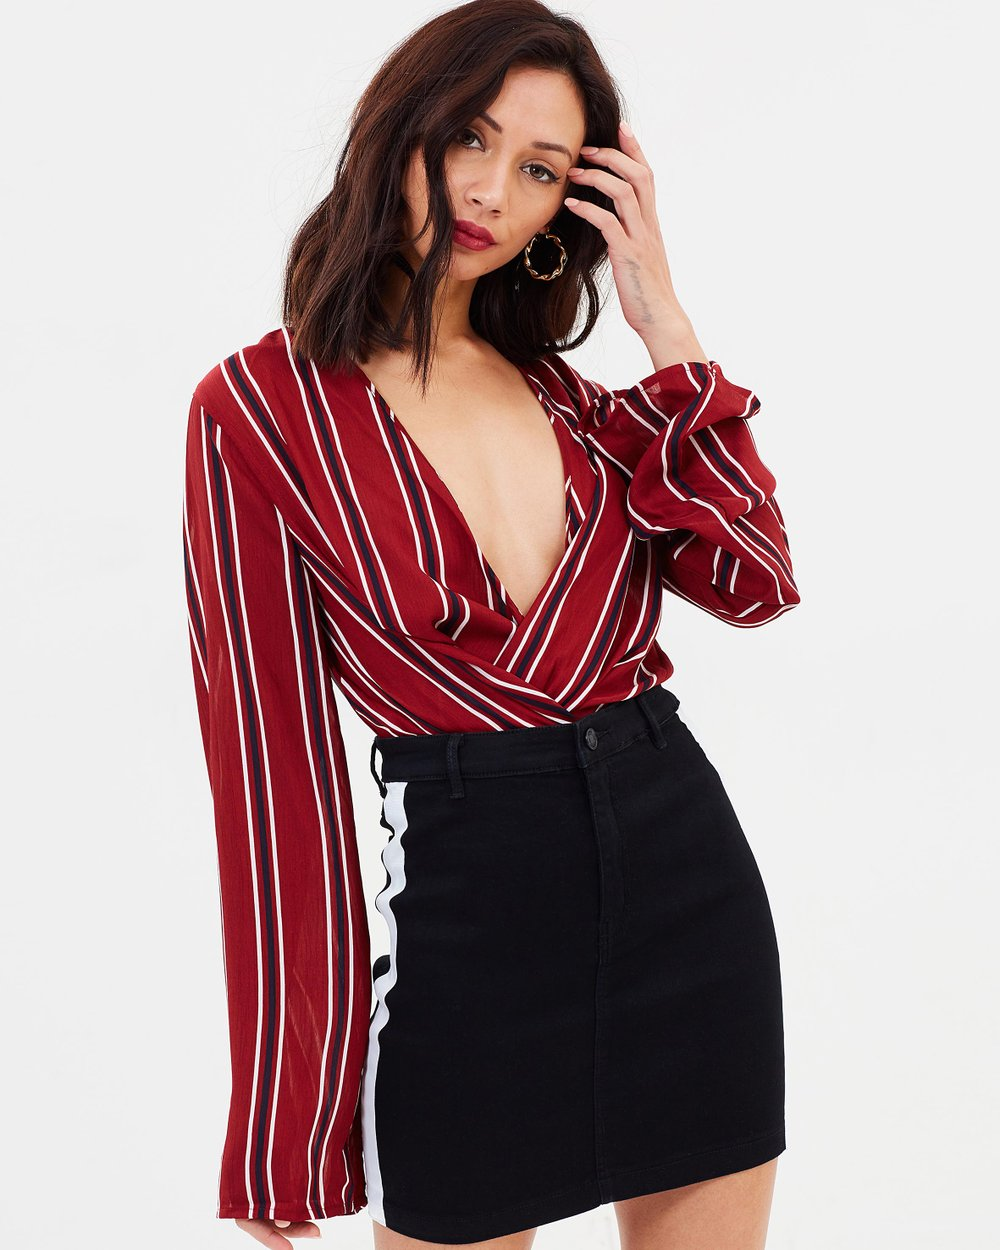 705a4218a8 Drape Plunge Bodysuit by Missguided Online